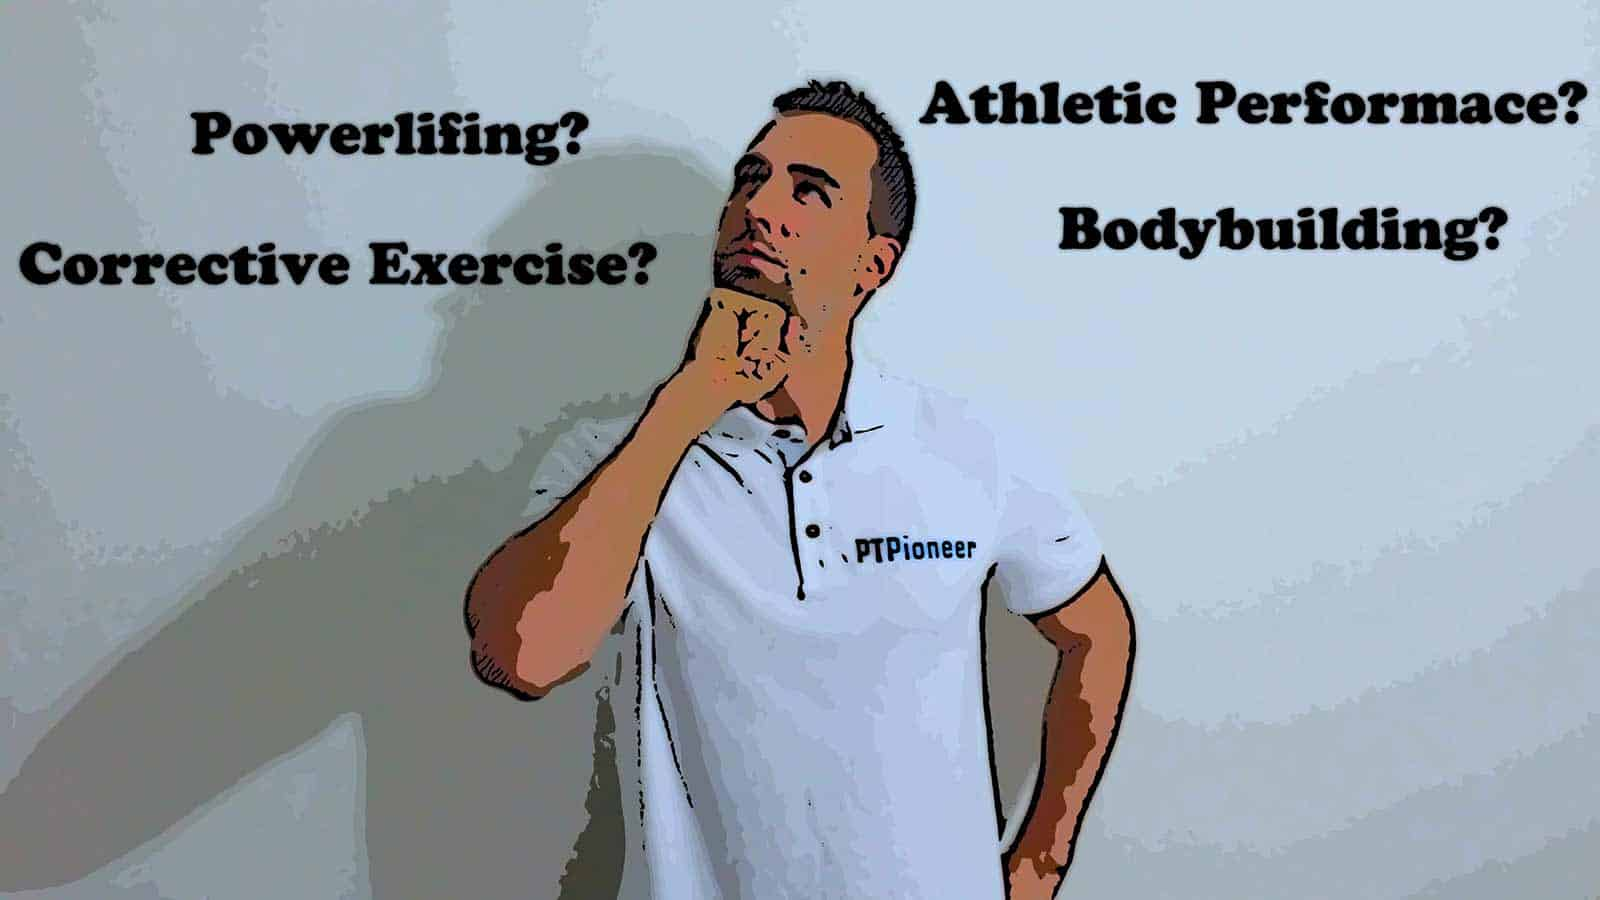 What type of personal training do you want to do?